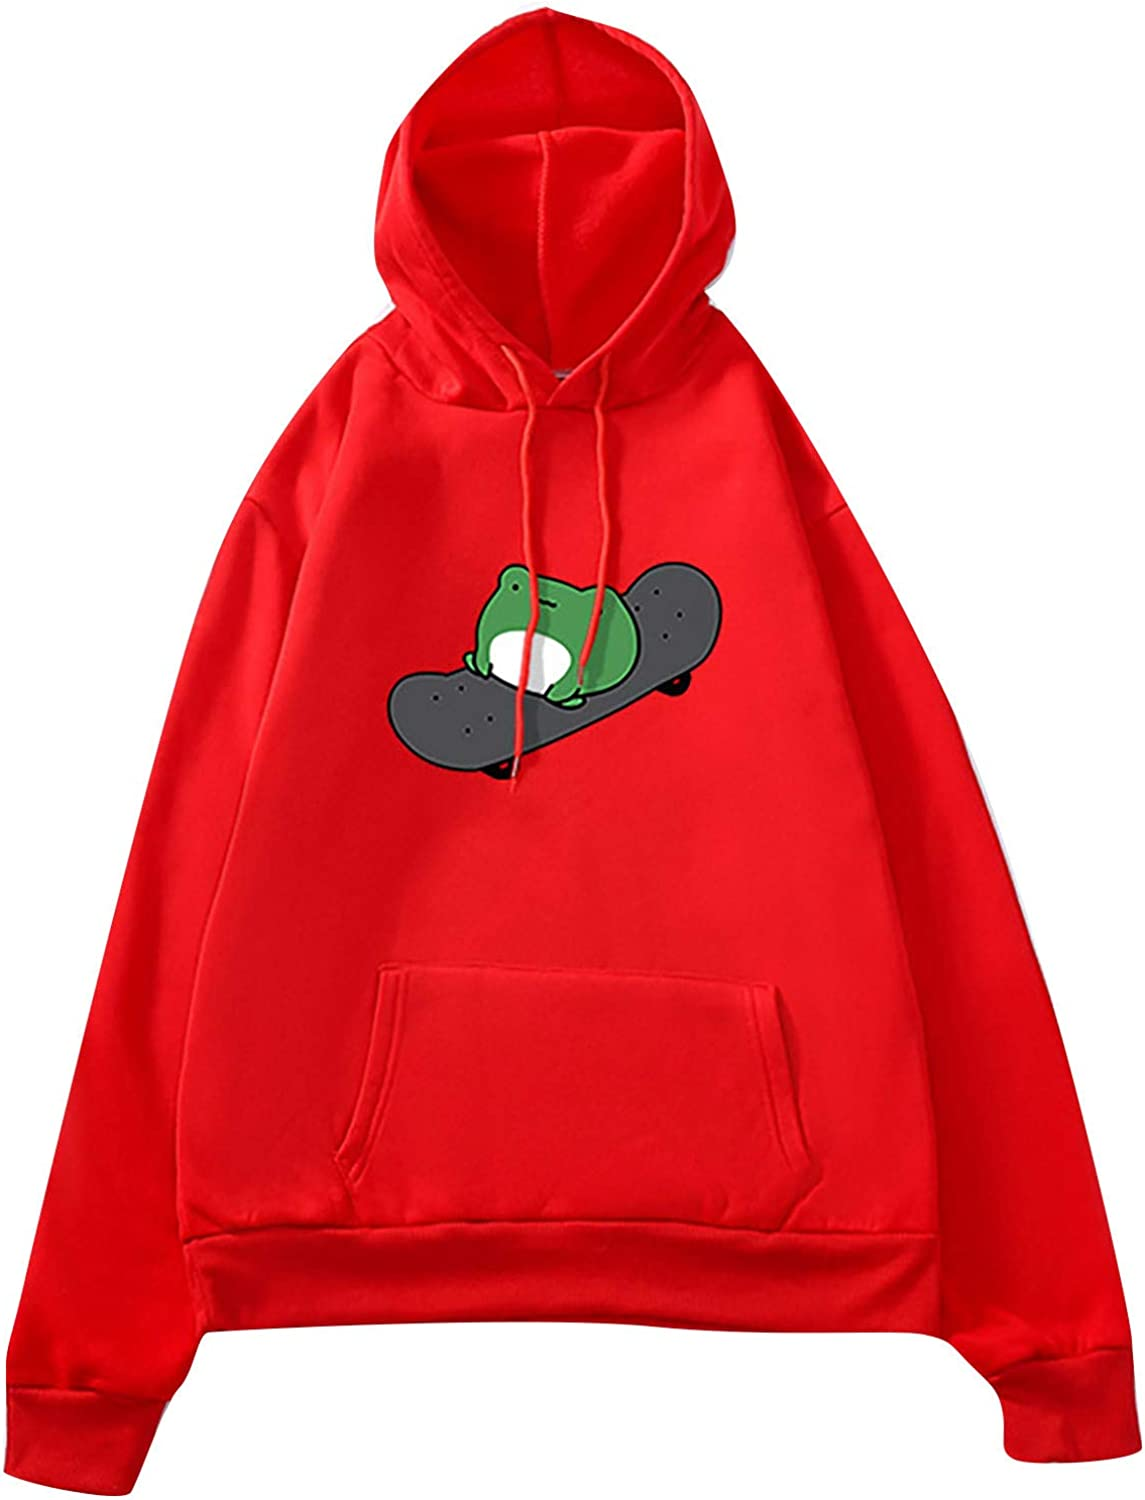 UOCUFY Hoodies for Women, Women's Casual Long Sleeve Sweatshirts Round Neck Drawstring Hooded Pullover Top with Pockets